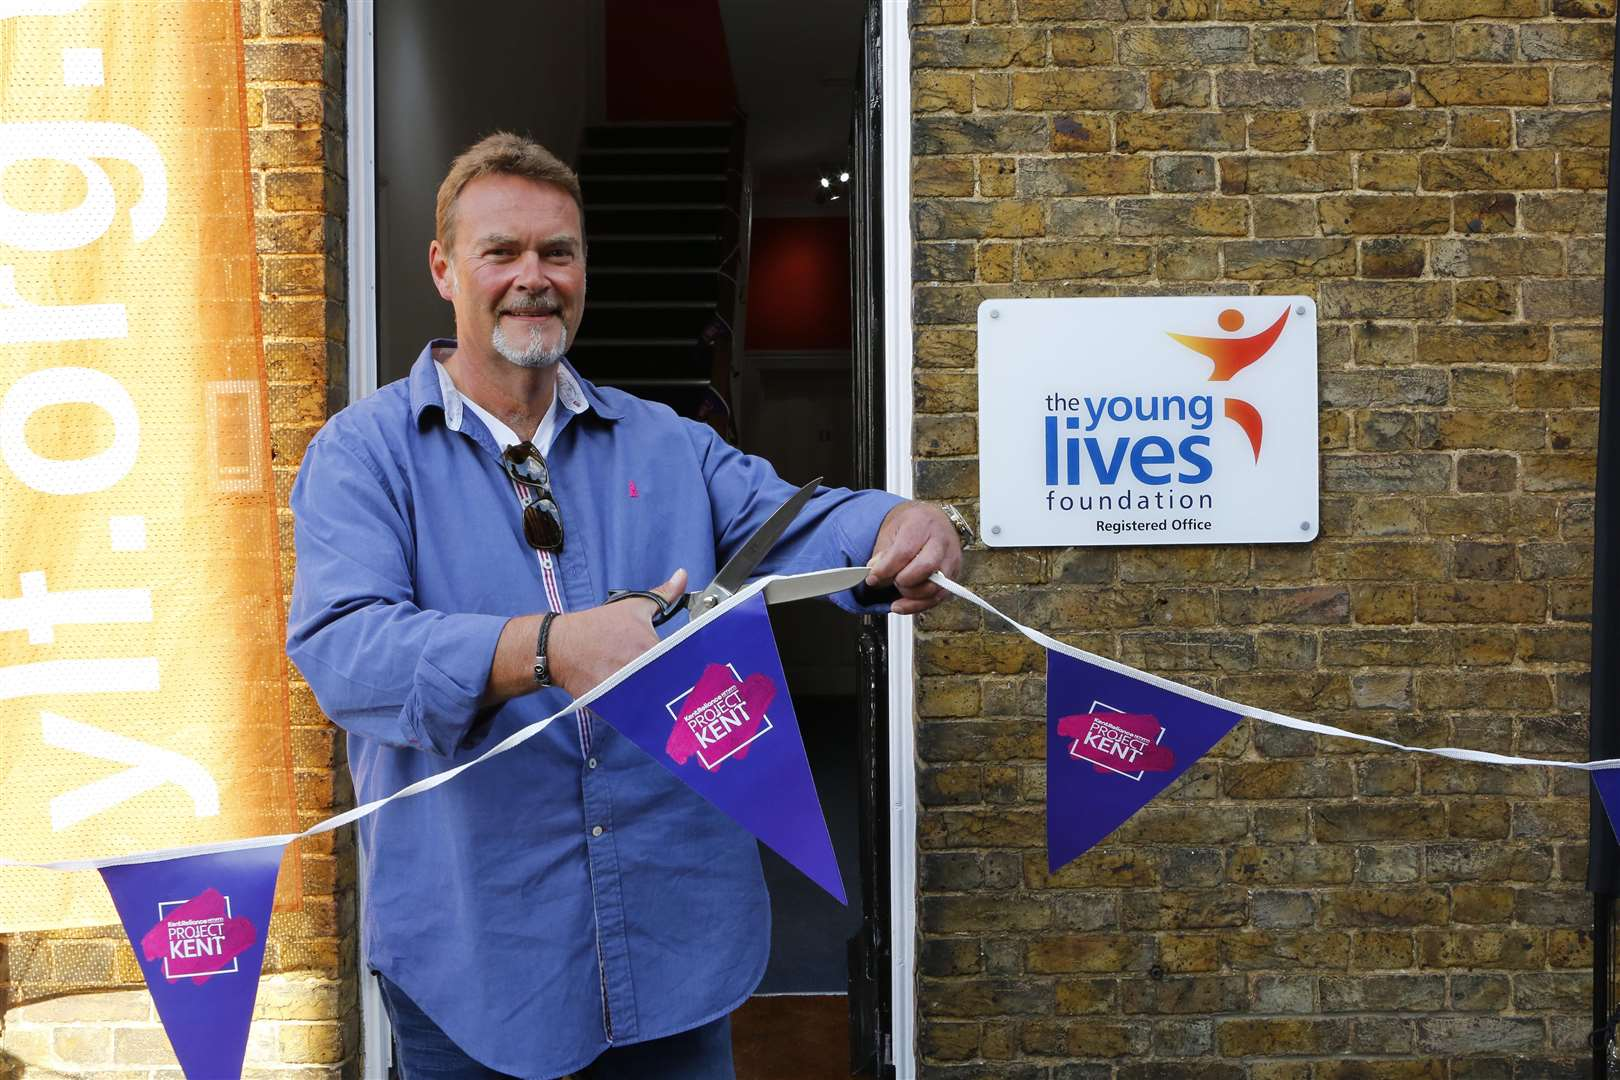 Project Kent's Grand Opening! kmfm's Project Kent with Kent Reliance. Andy Golding from Kent Relliance cuts the ribbon at Young Lives Foundation .Picture: Andy Jones (4165019)